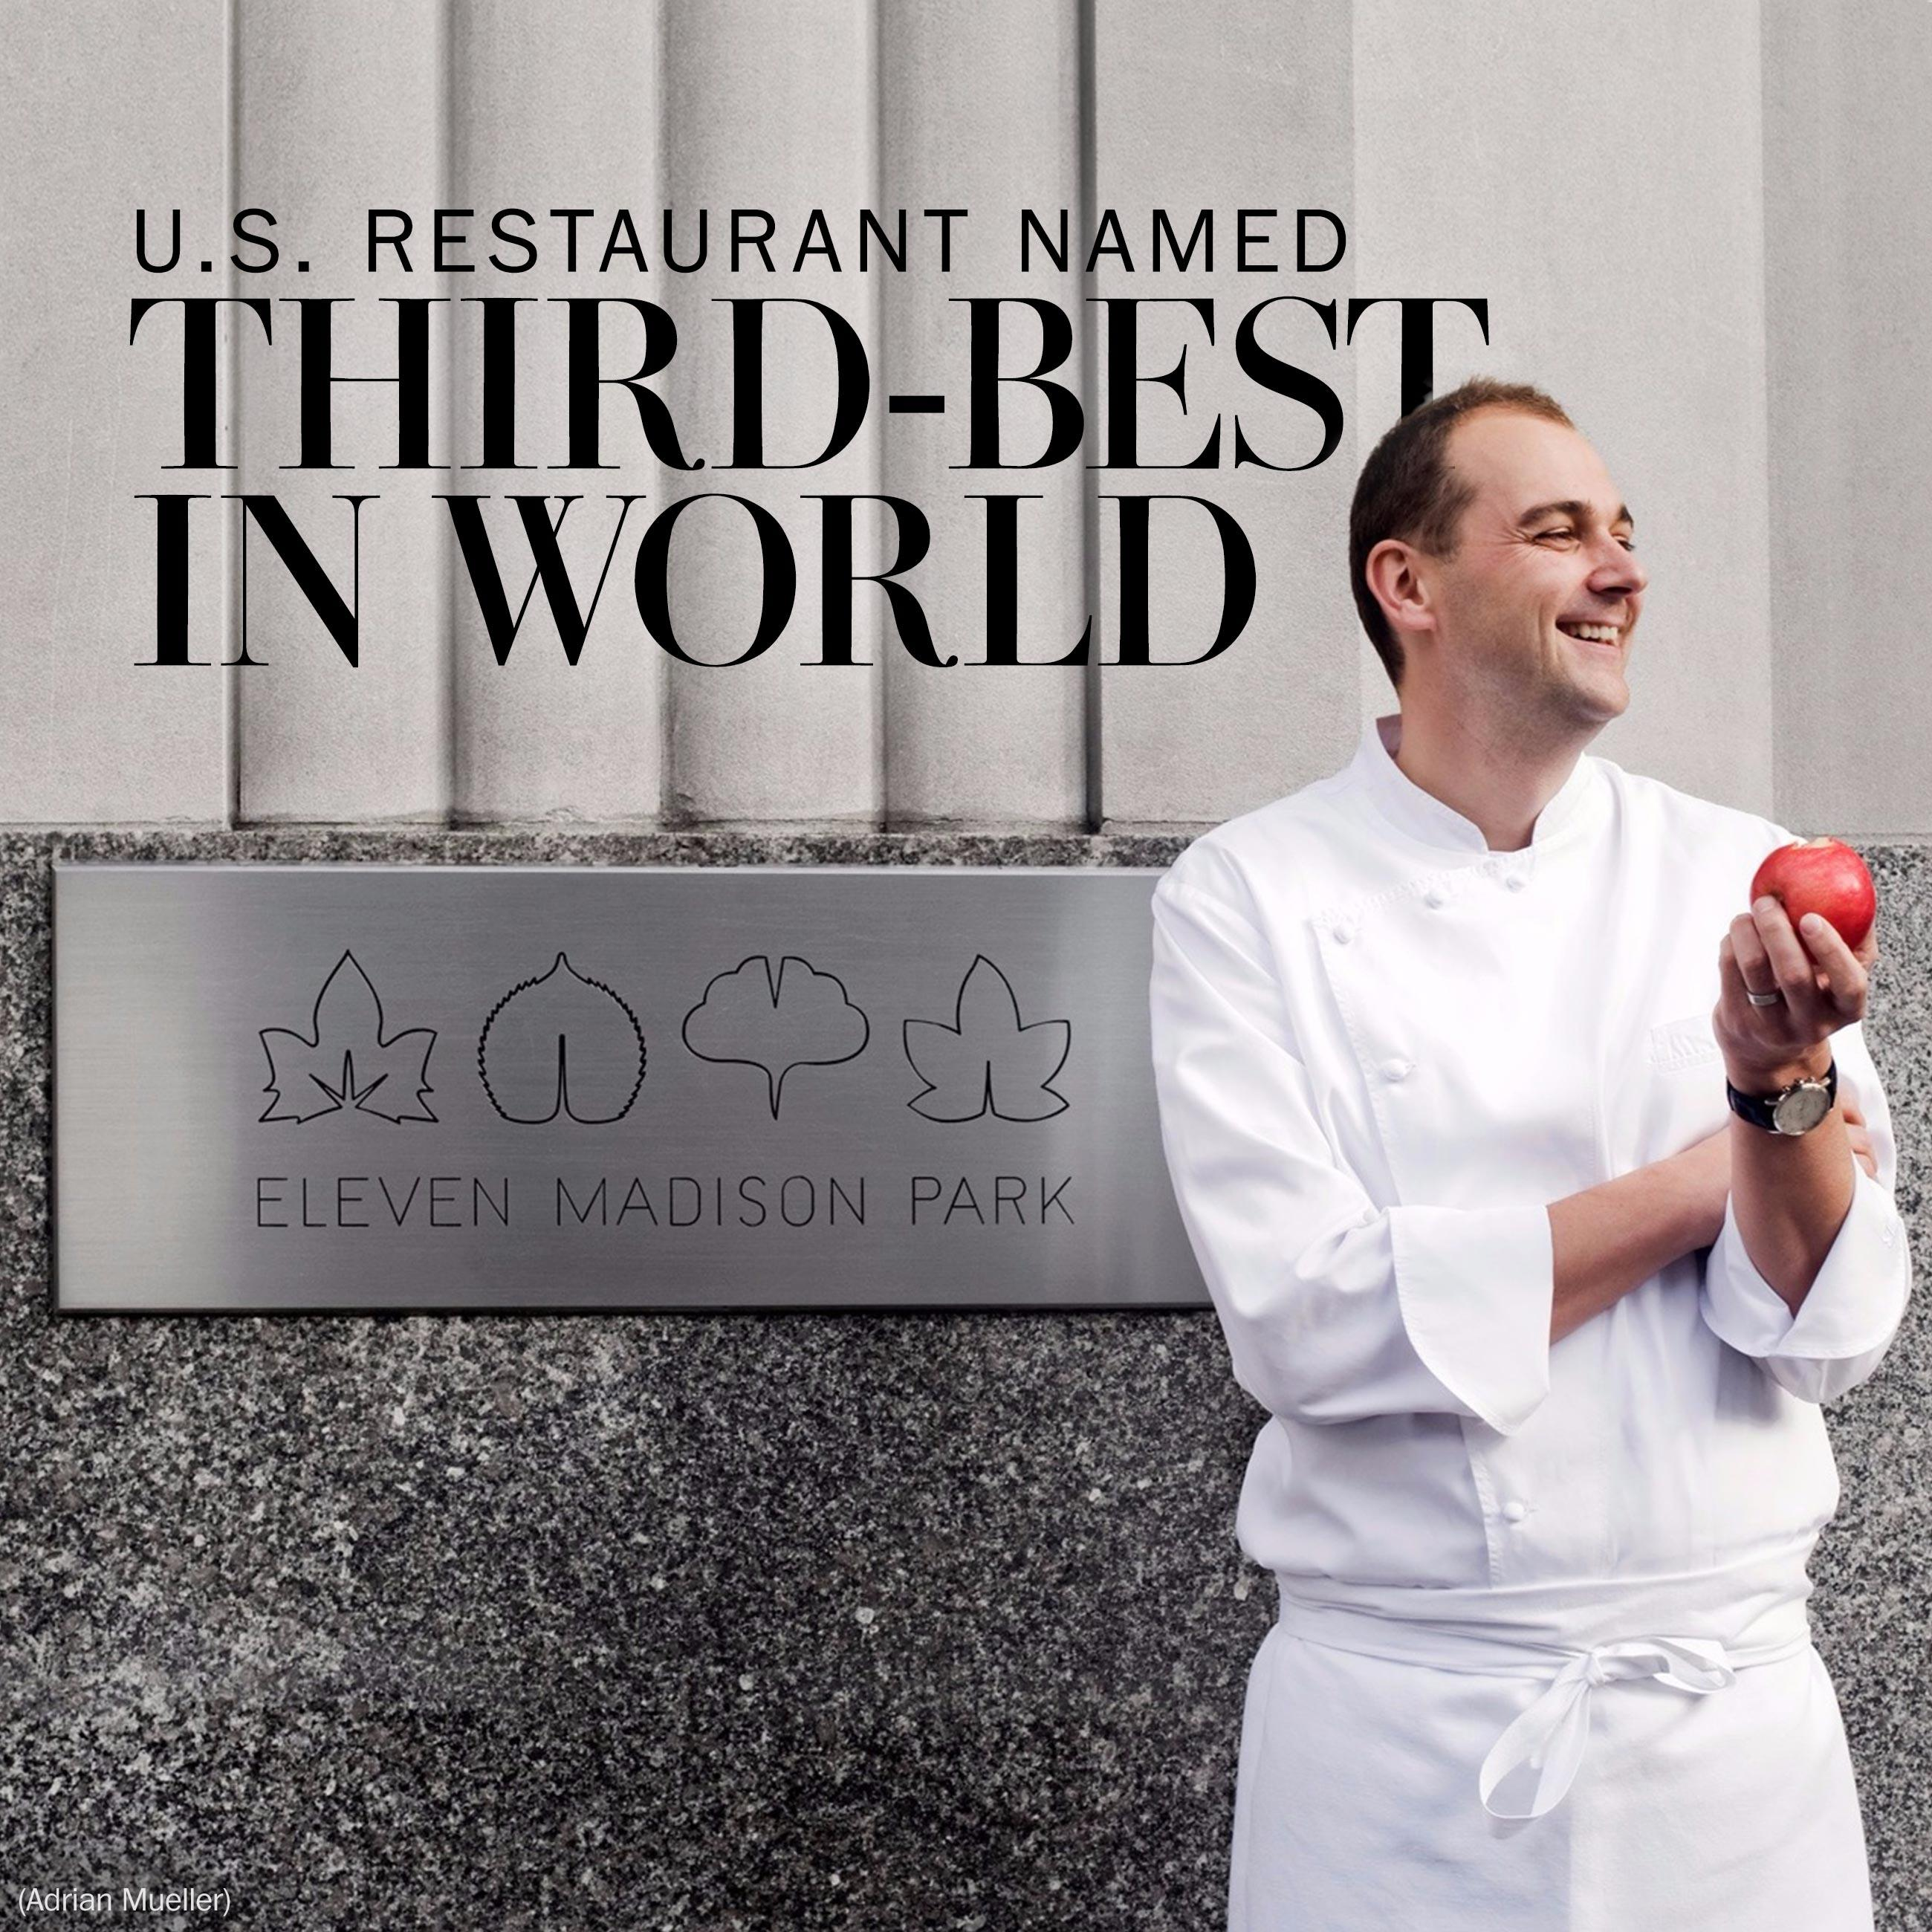 A U.S. restaurant is No. 3 on the 2016 World's 50 Best Restaurants list